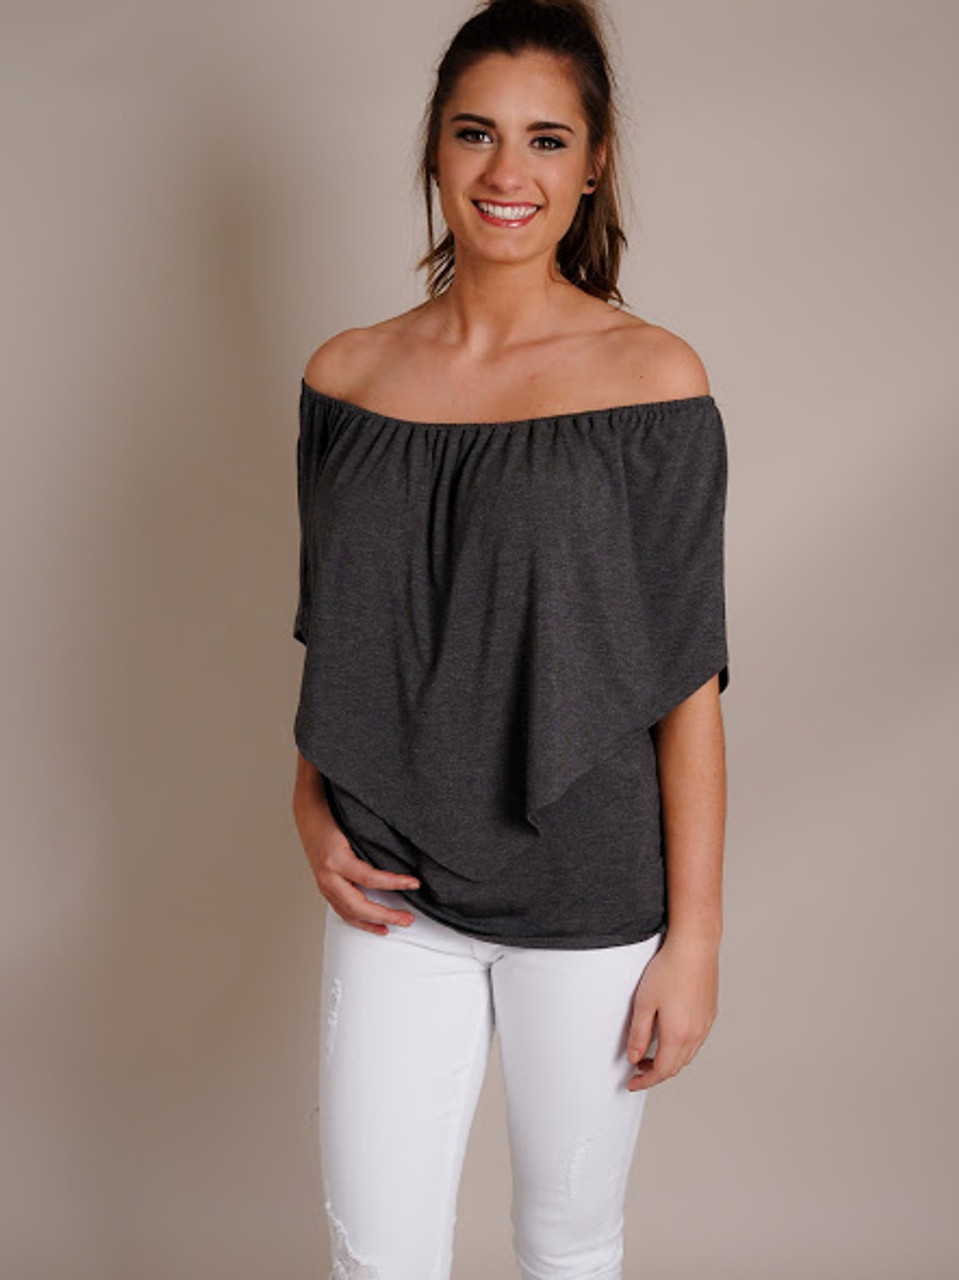 Woman in White Pants Models Off-the-Shoulder Gray Top